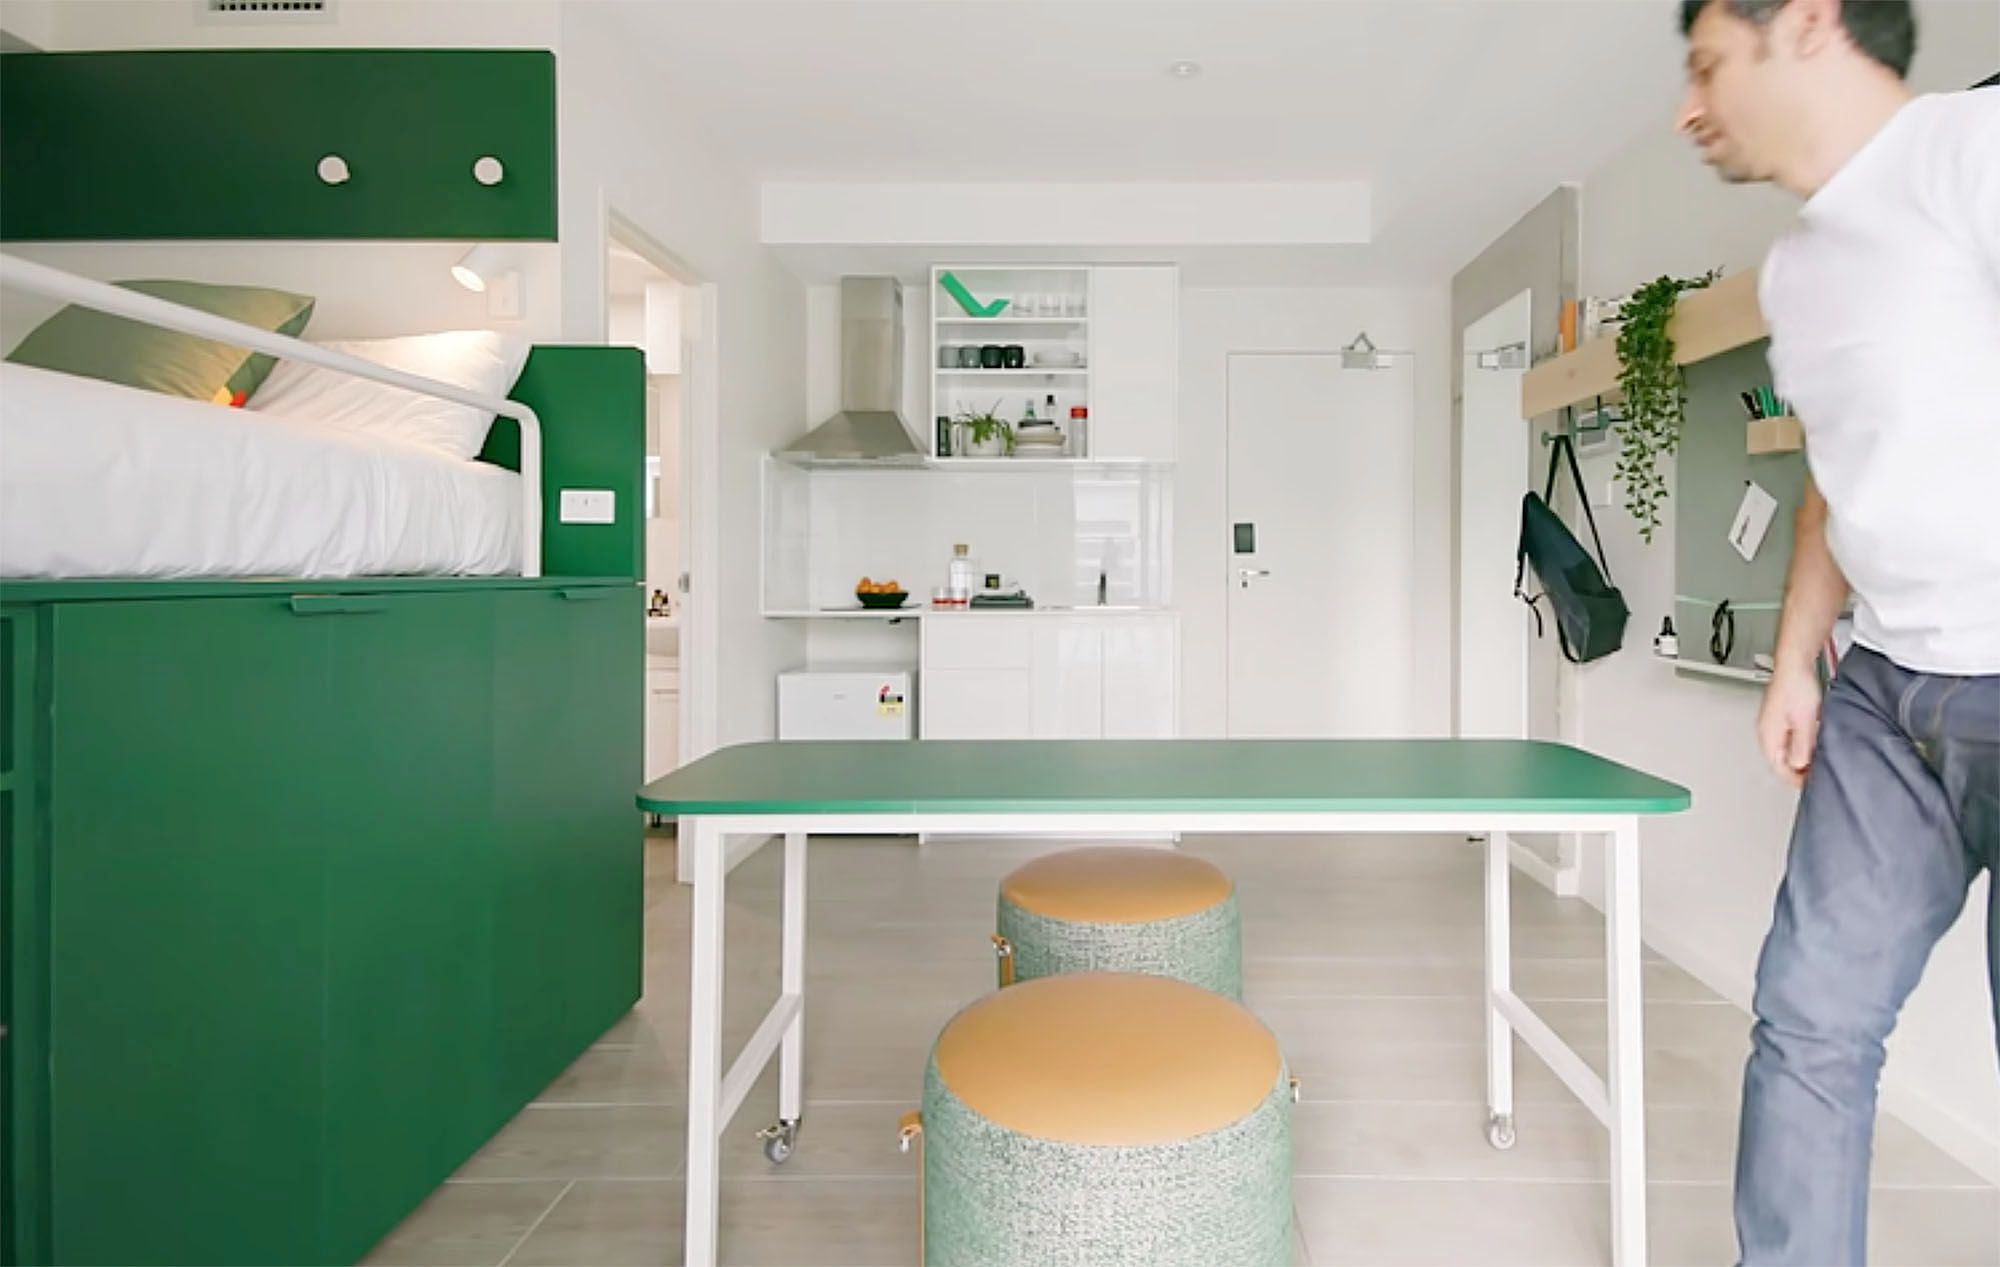 UKO stanmore coliving micro-apartment Mostaghim Associates dining table